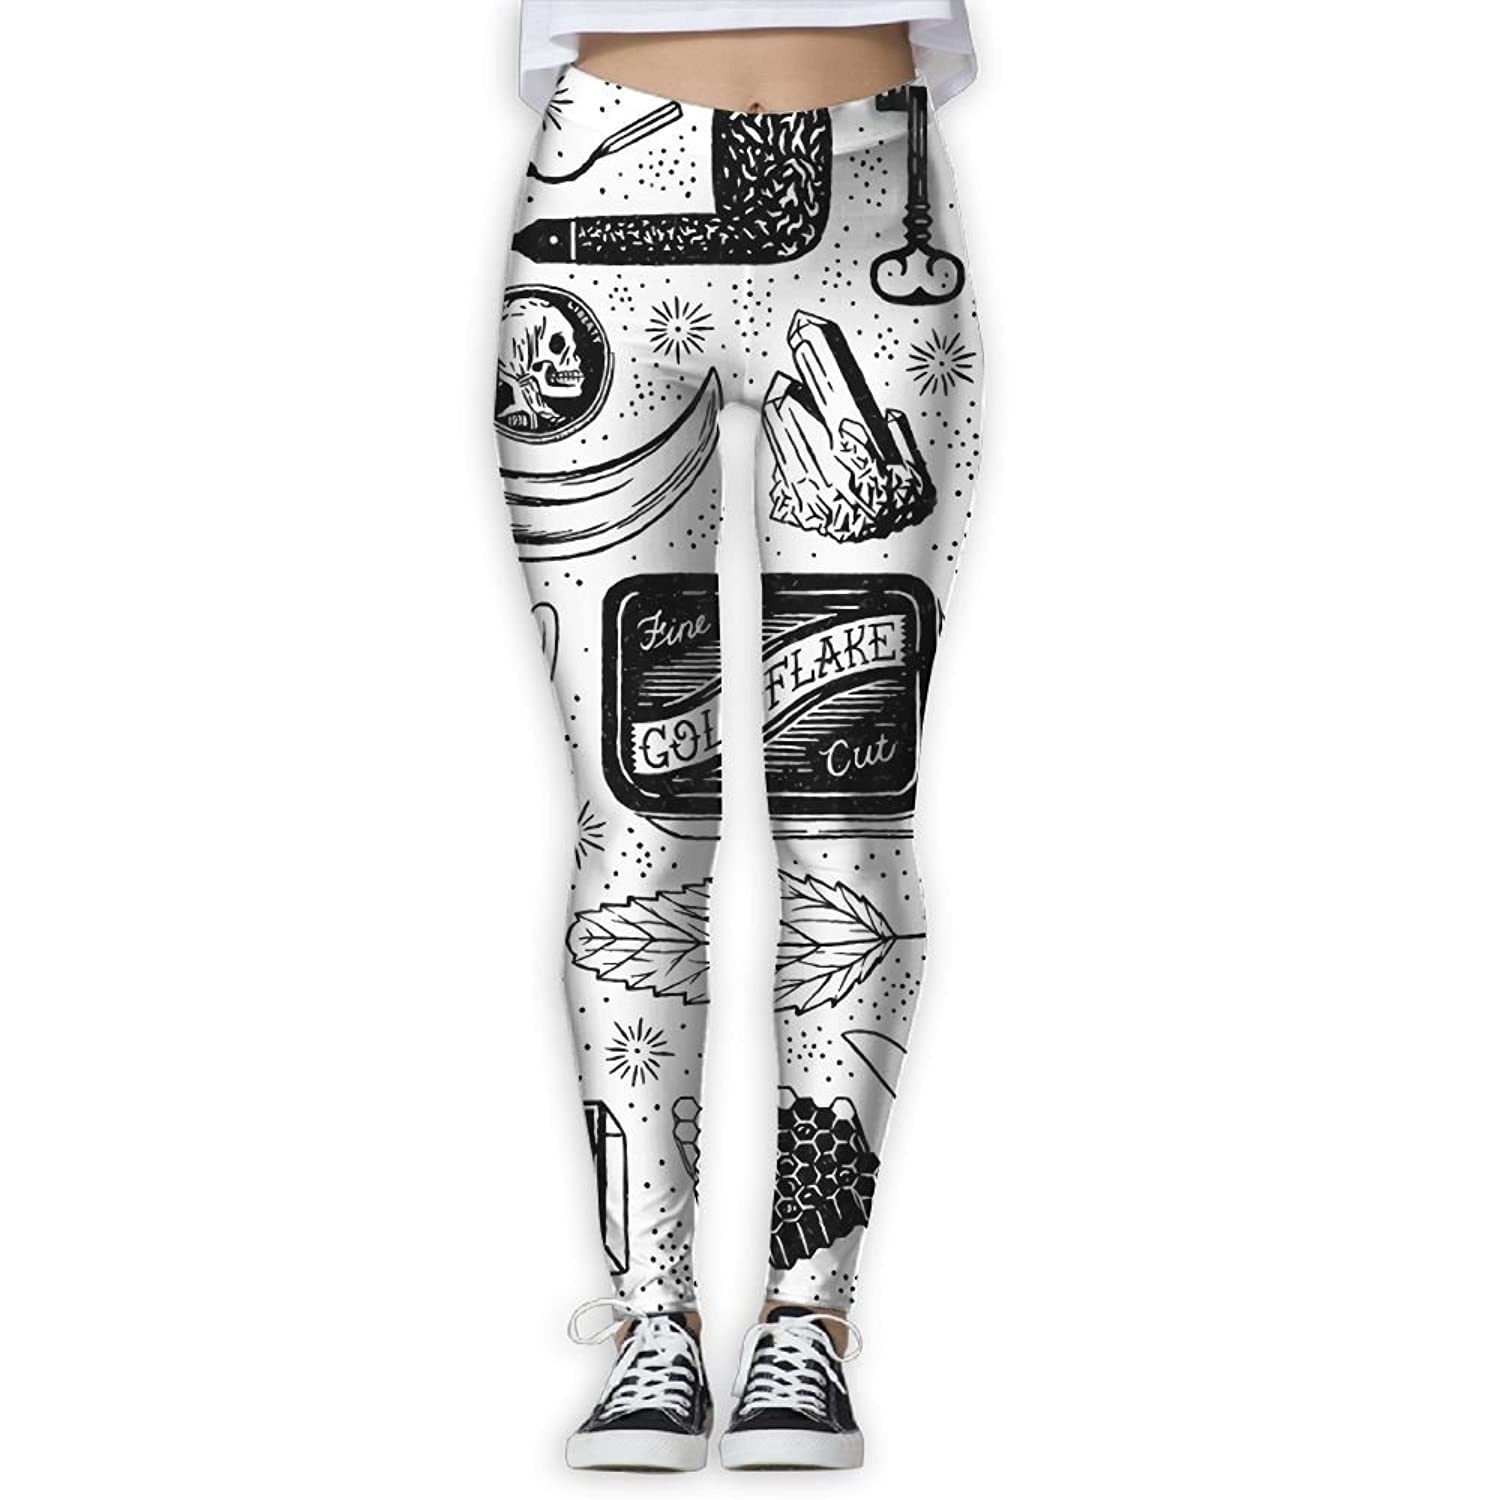 Doppyee New Explorers Stuff Printing Design Compression Leggings Pants Tights For Women S-XL for sale